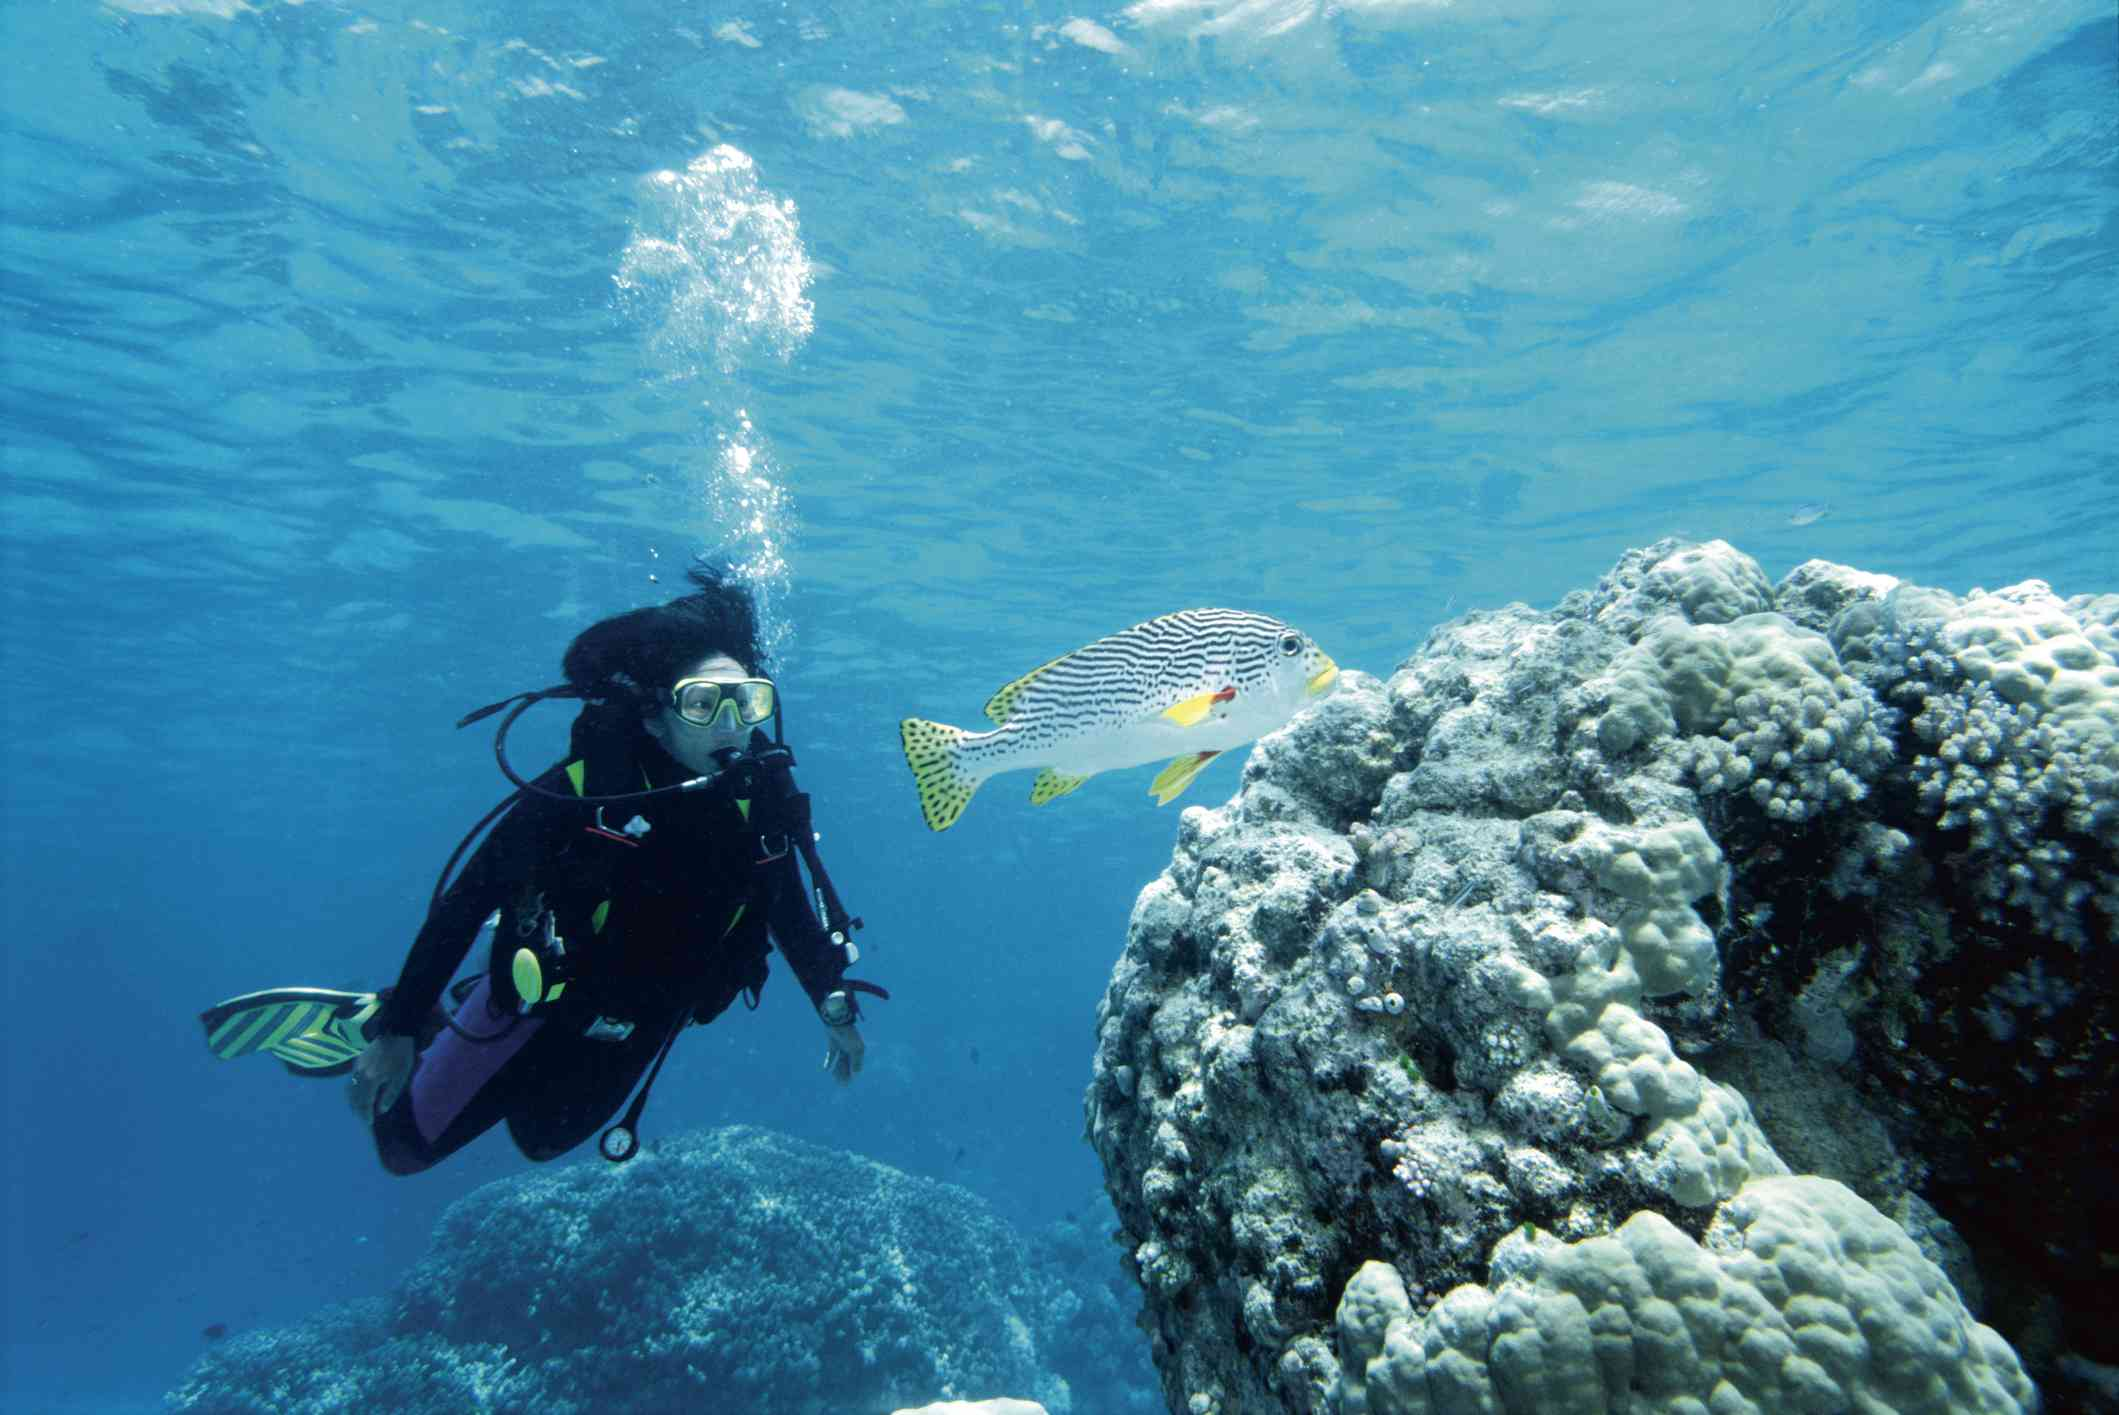 Scuba Diver and Sweetlips